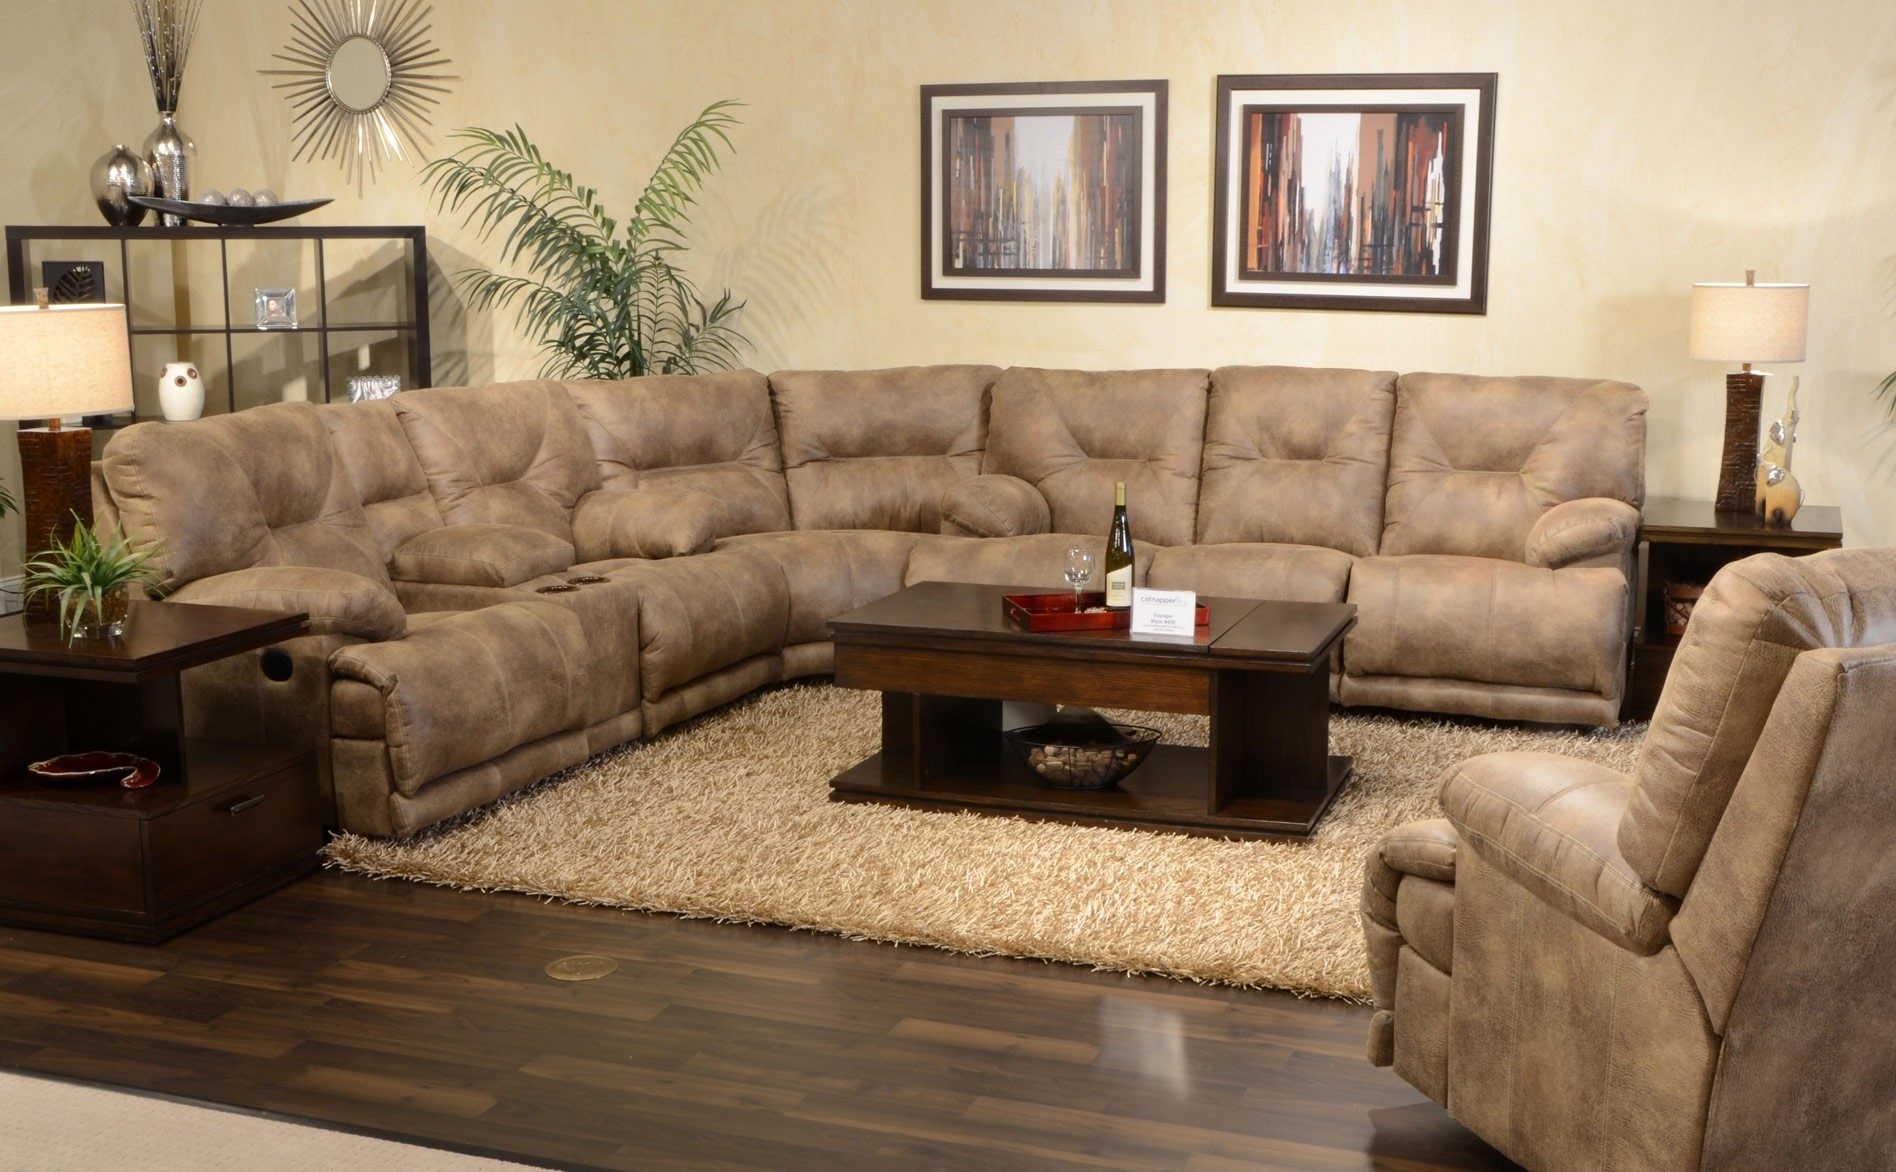 Furniture : Barcelona Sectional Sofa & Ottoman In Beige Sofa 3 For Sectional Sofas For Small Doorways (View 3 of 10)